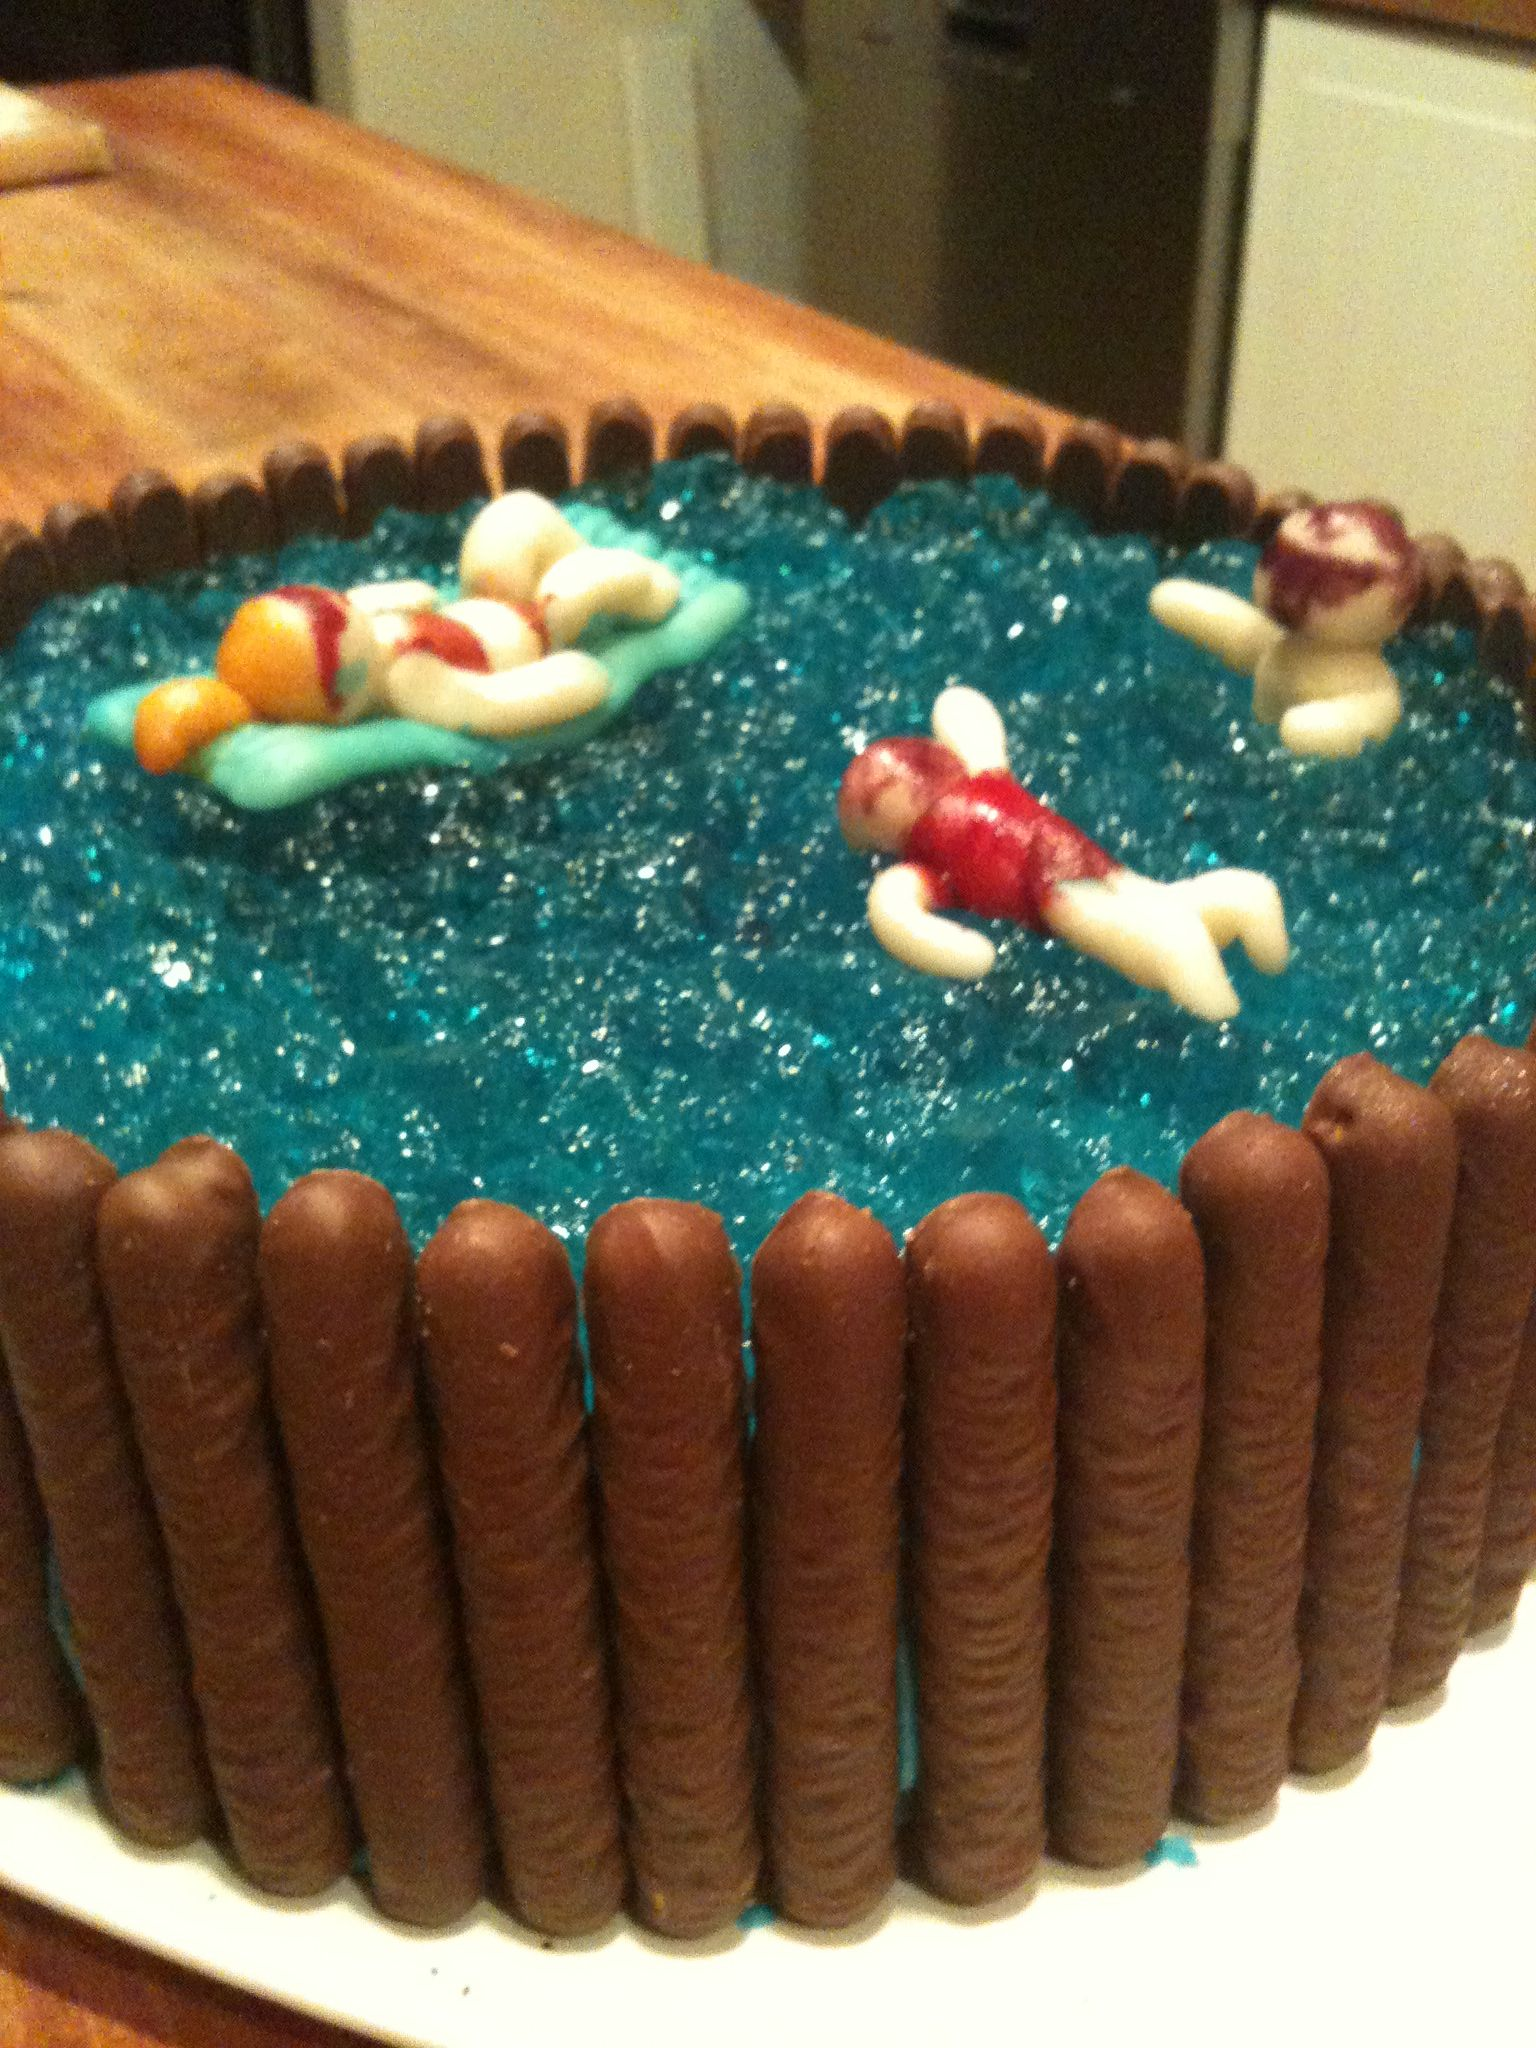 Swimming pool cake, cake base, blue jelly pool and